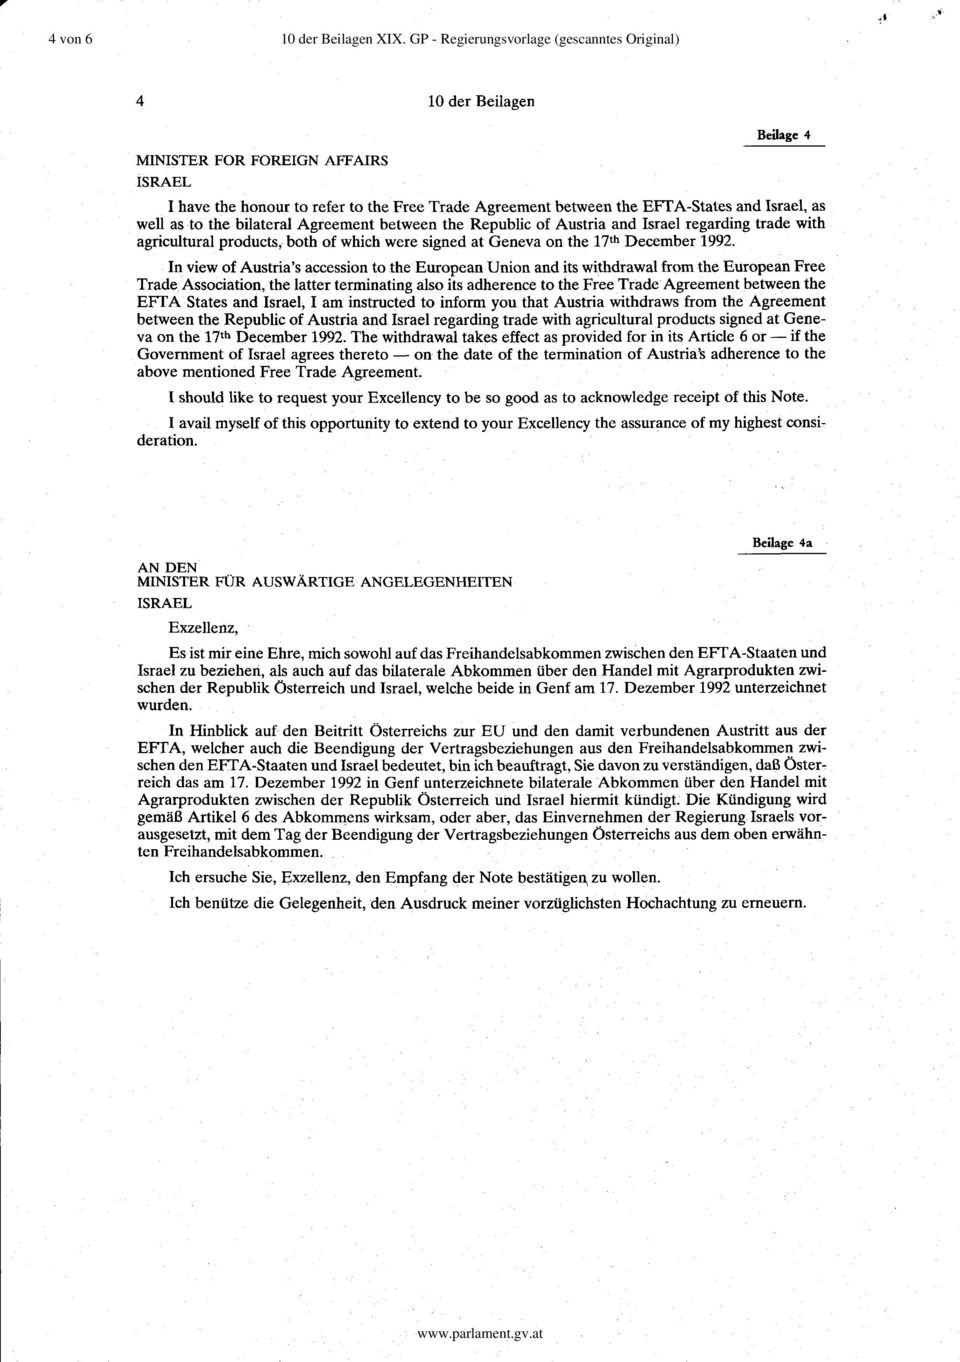 Israel, as weil as to the bilateral Agreement between the Republic of Austria and Israel regarding trade with agricultural products, both of which were signed at Geneva on the 17 th December 1992.